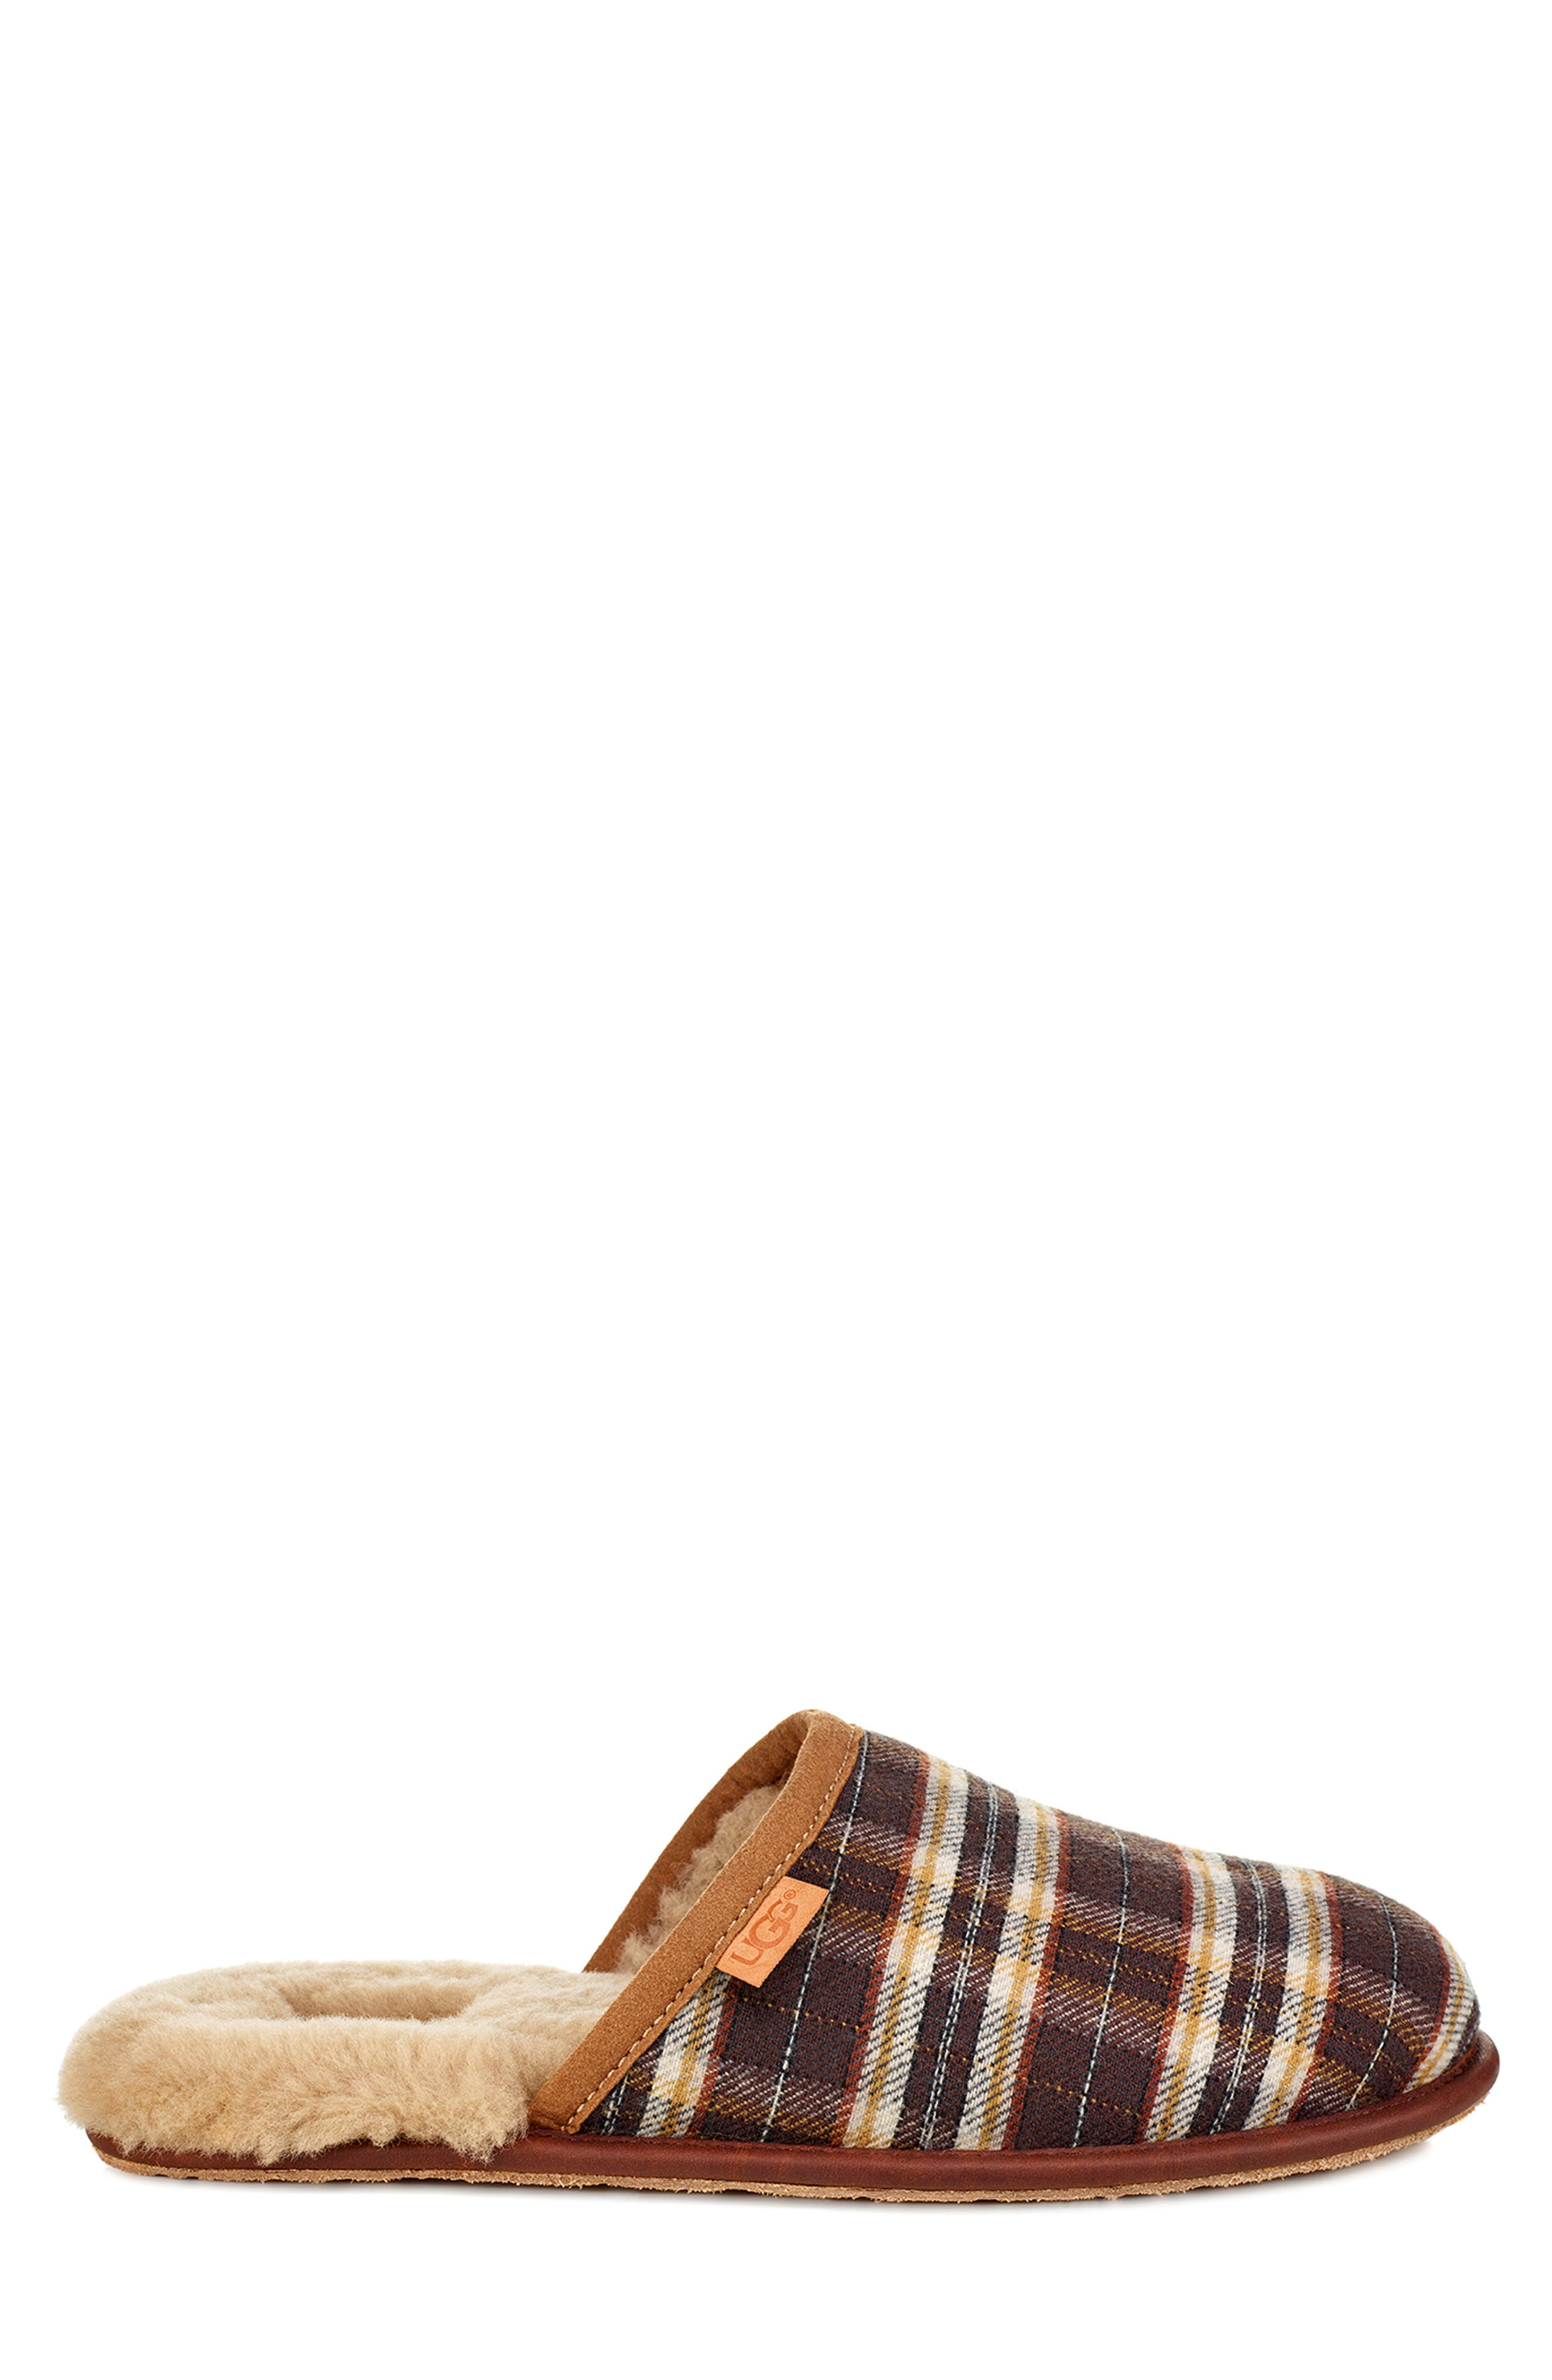 Scuff Slipper,                             Alternate thumbnail 3, color,                             CHESTNUT